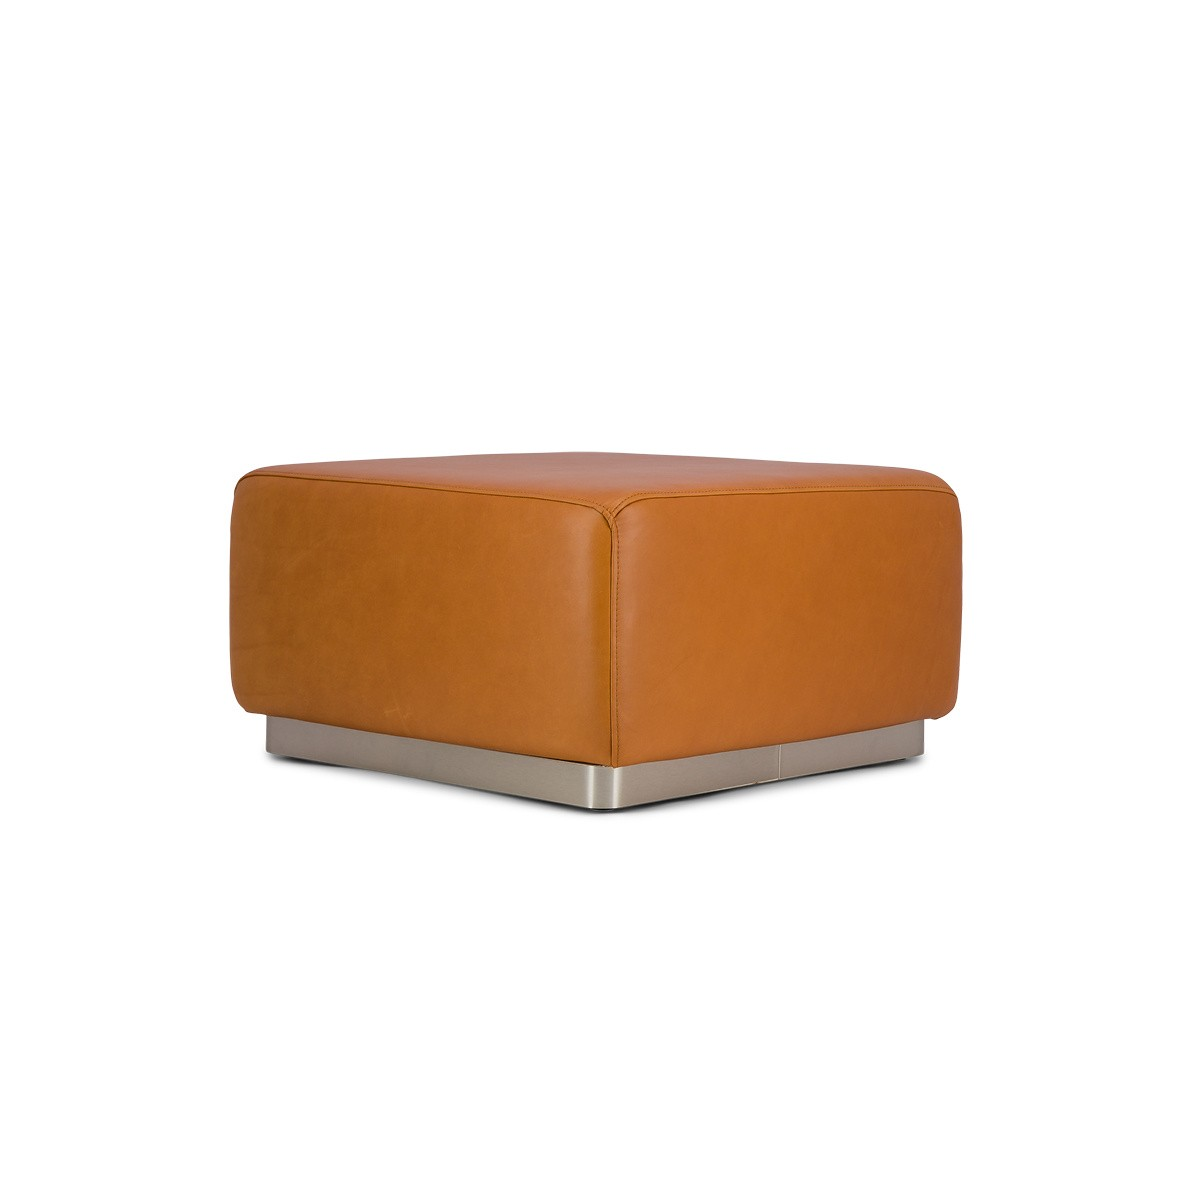 Rotondo Footstool in Camel Leather